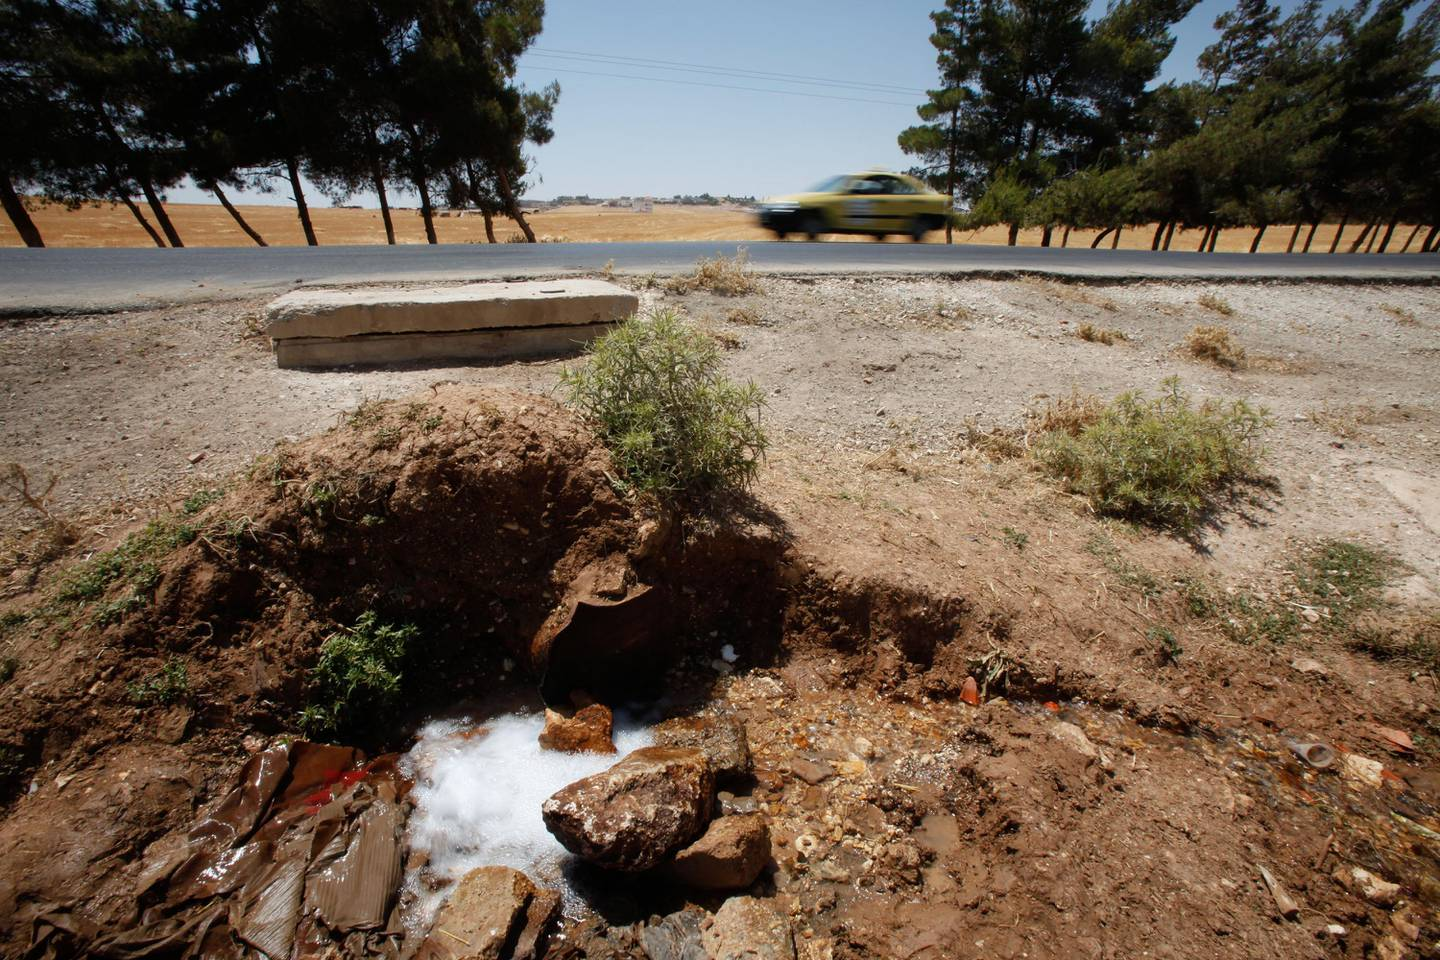 Water flow from a central pipe near the city of Madaba, south of Amman in an aggression by farmers to irrigate their farms in Madaba, Jordan on June 18, 2010. (Salah Malkawi for The National)